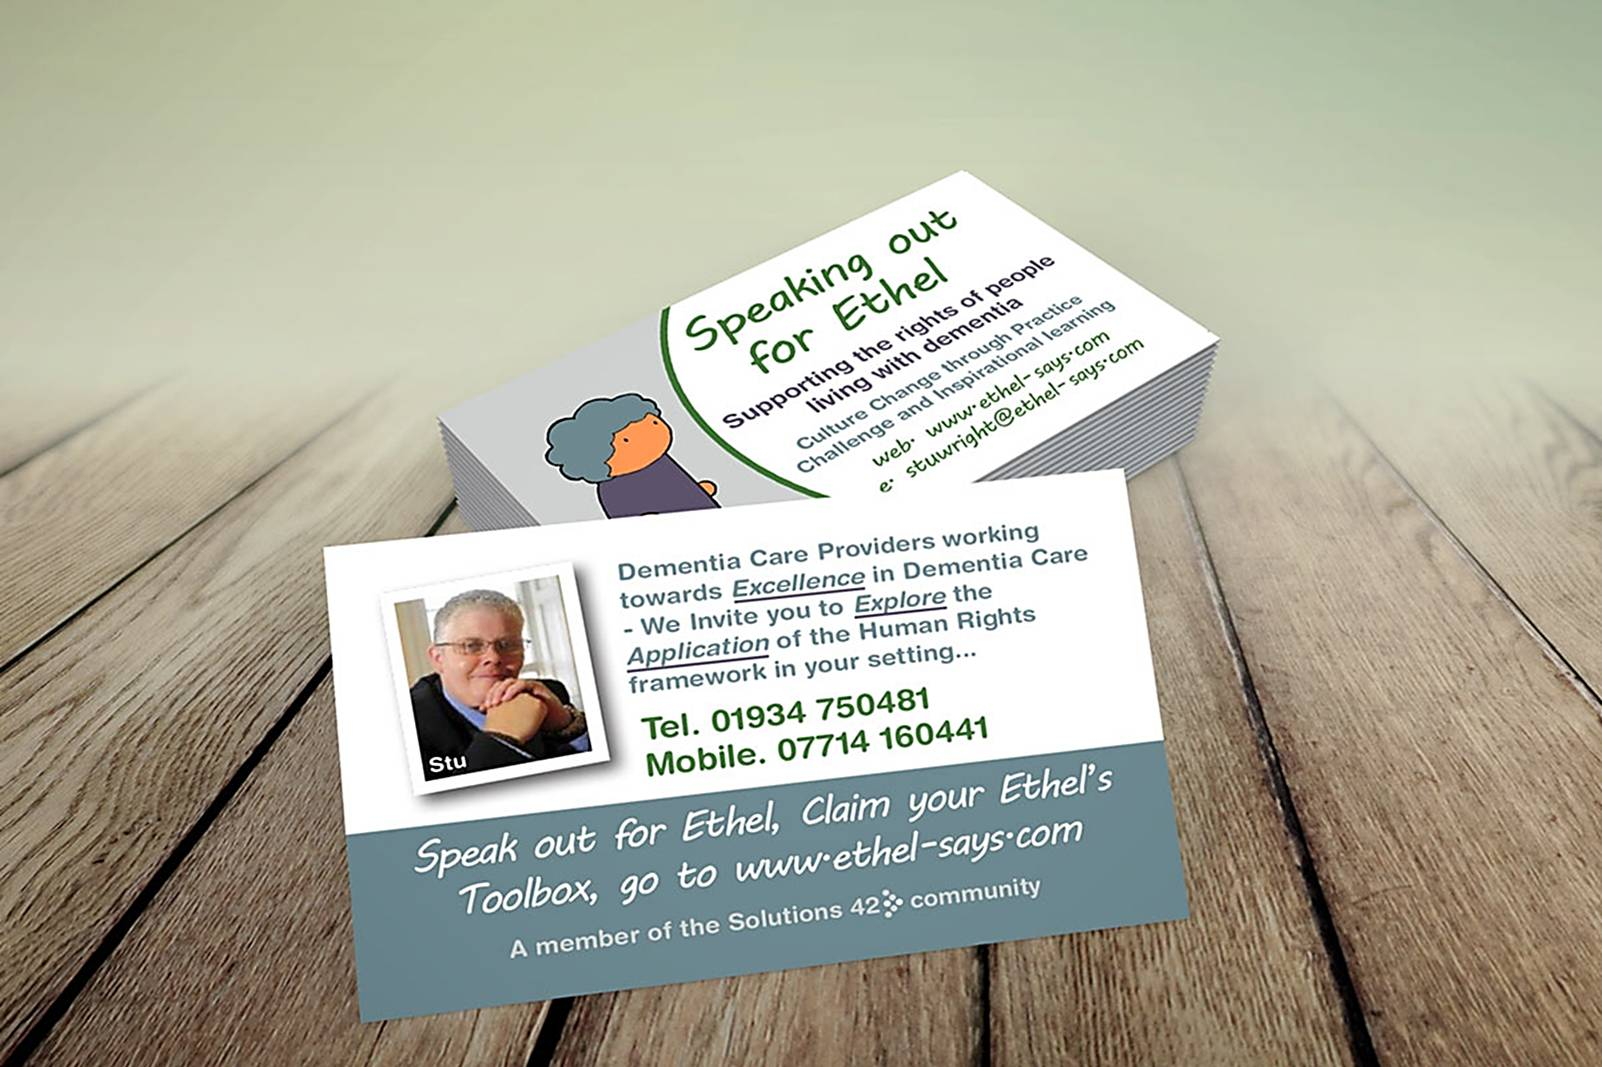 business cards on wooden surface